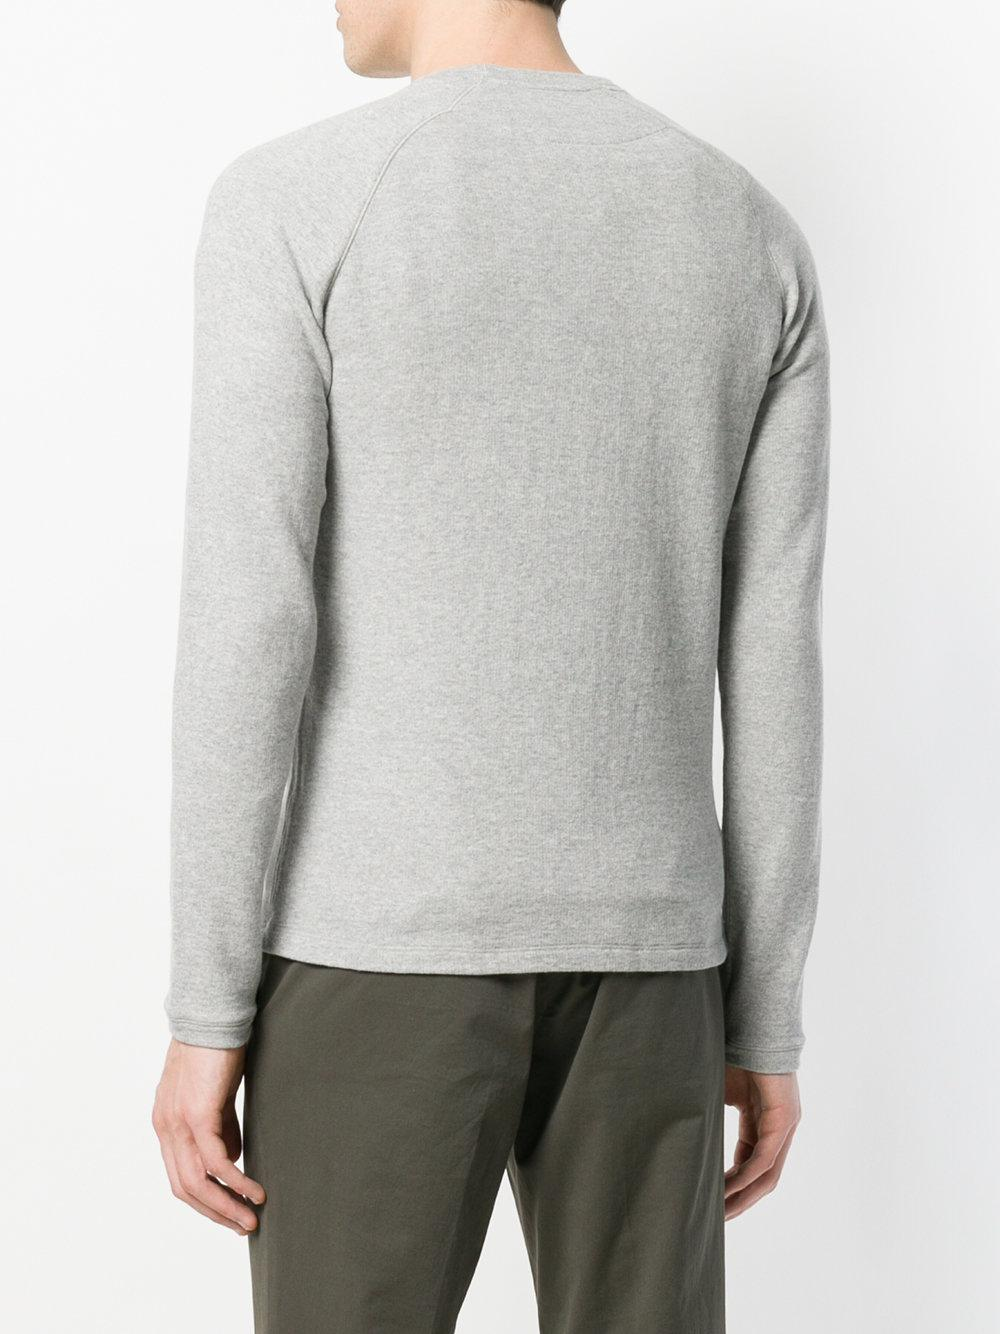 marl effect sweatshirt - Grey Aspesi Buy Cheap Shop For lIPjhT